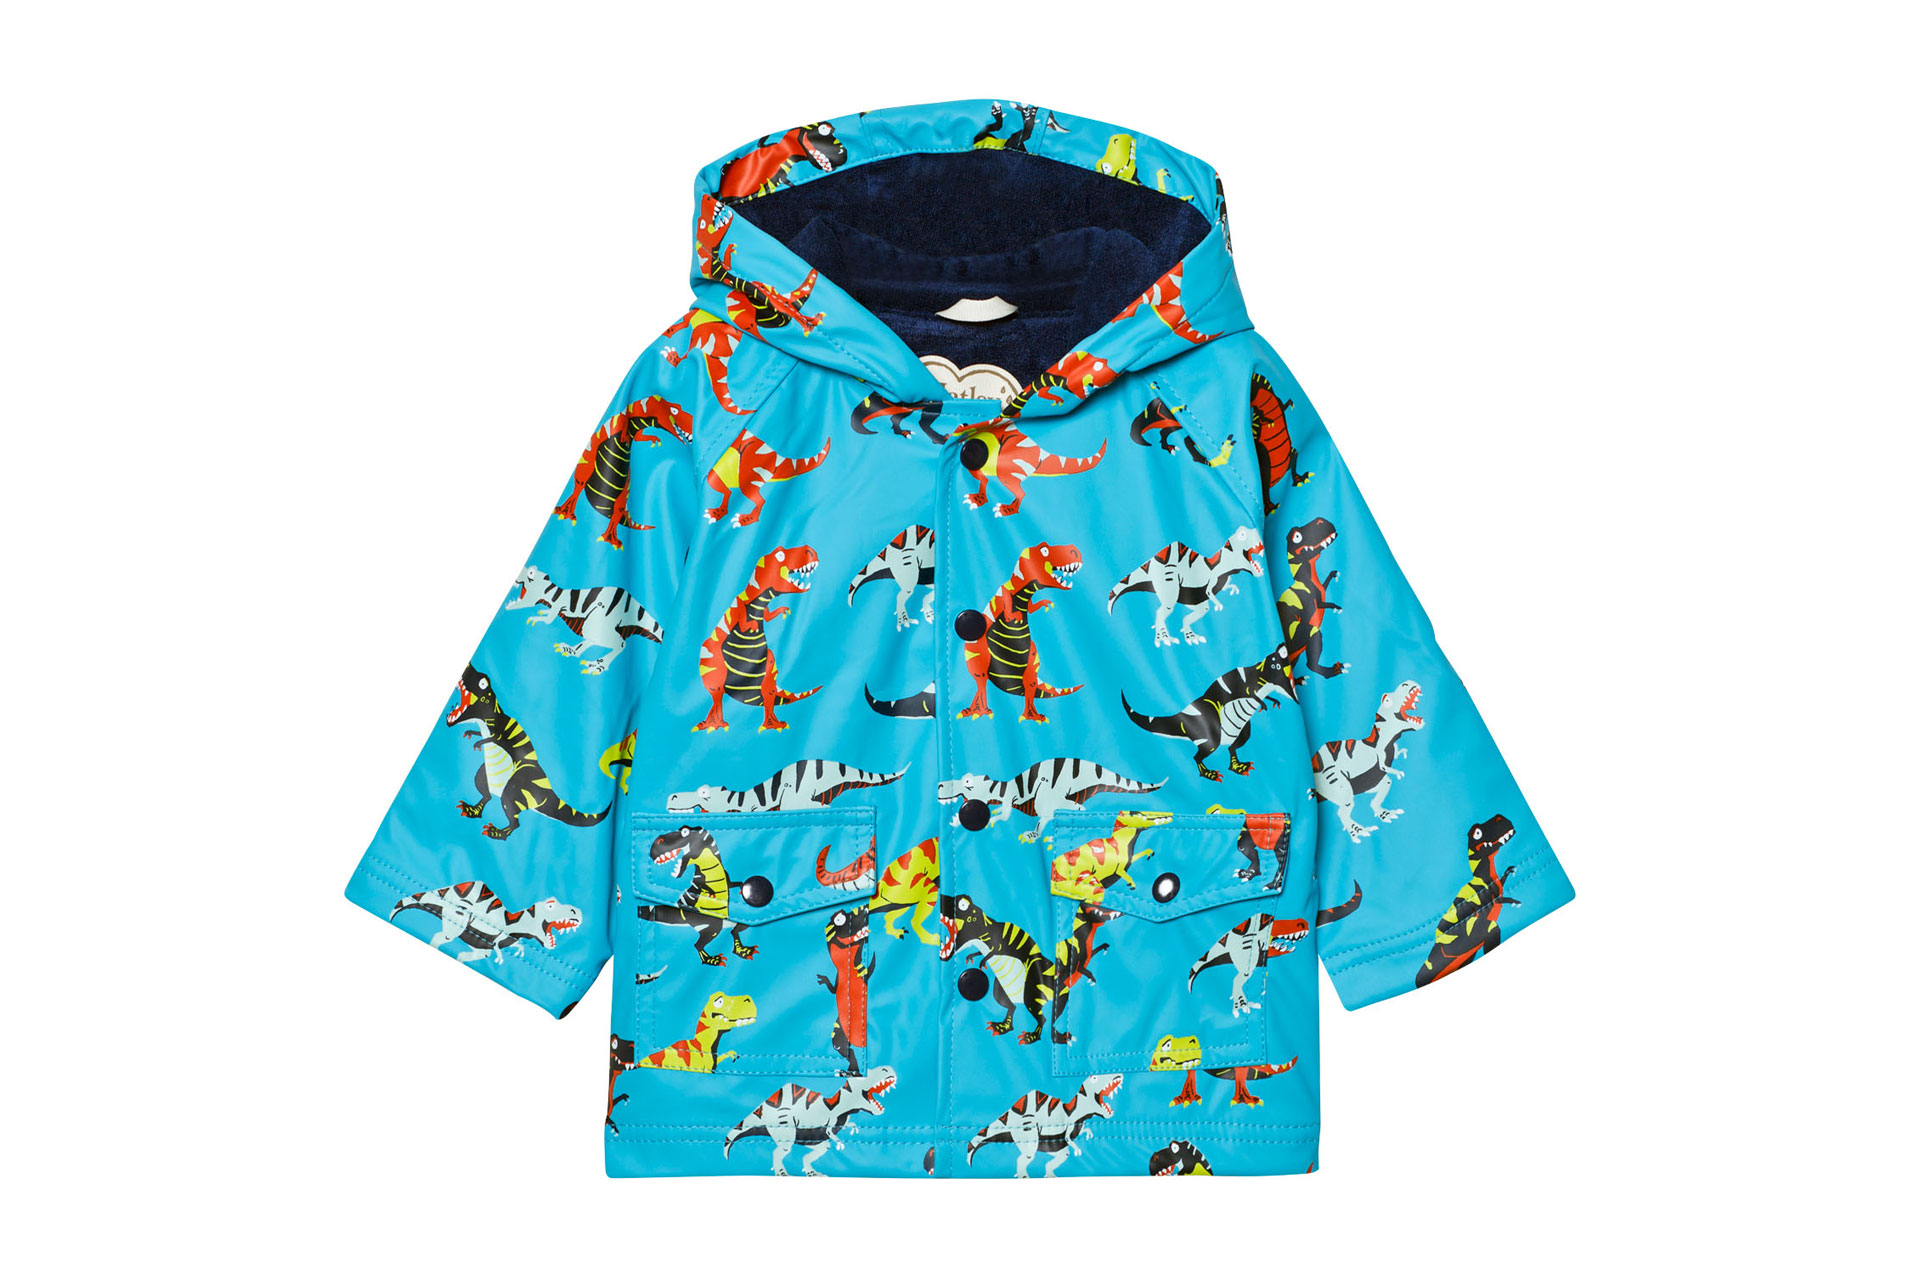 Hatley Blue Dinosaur Print Fleece Lined Raincoat